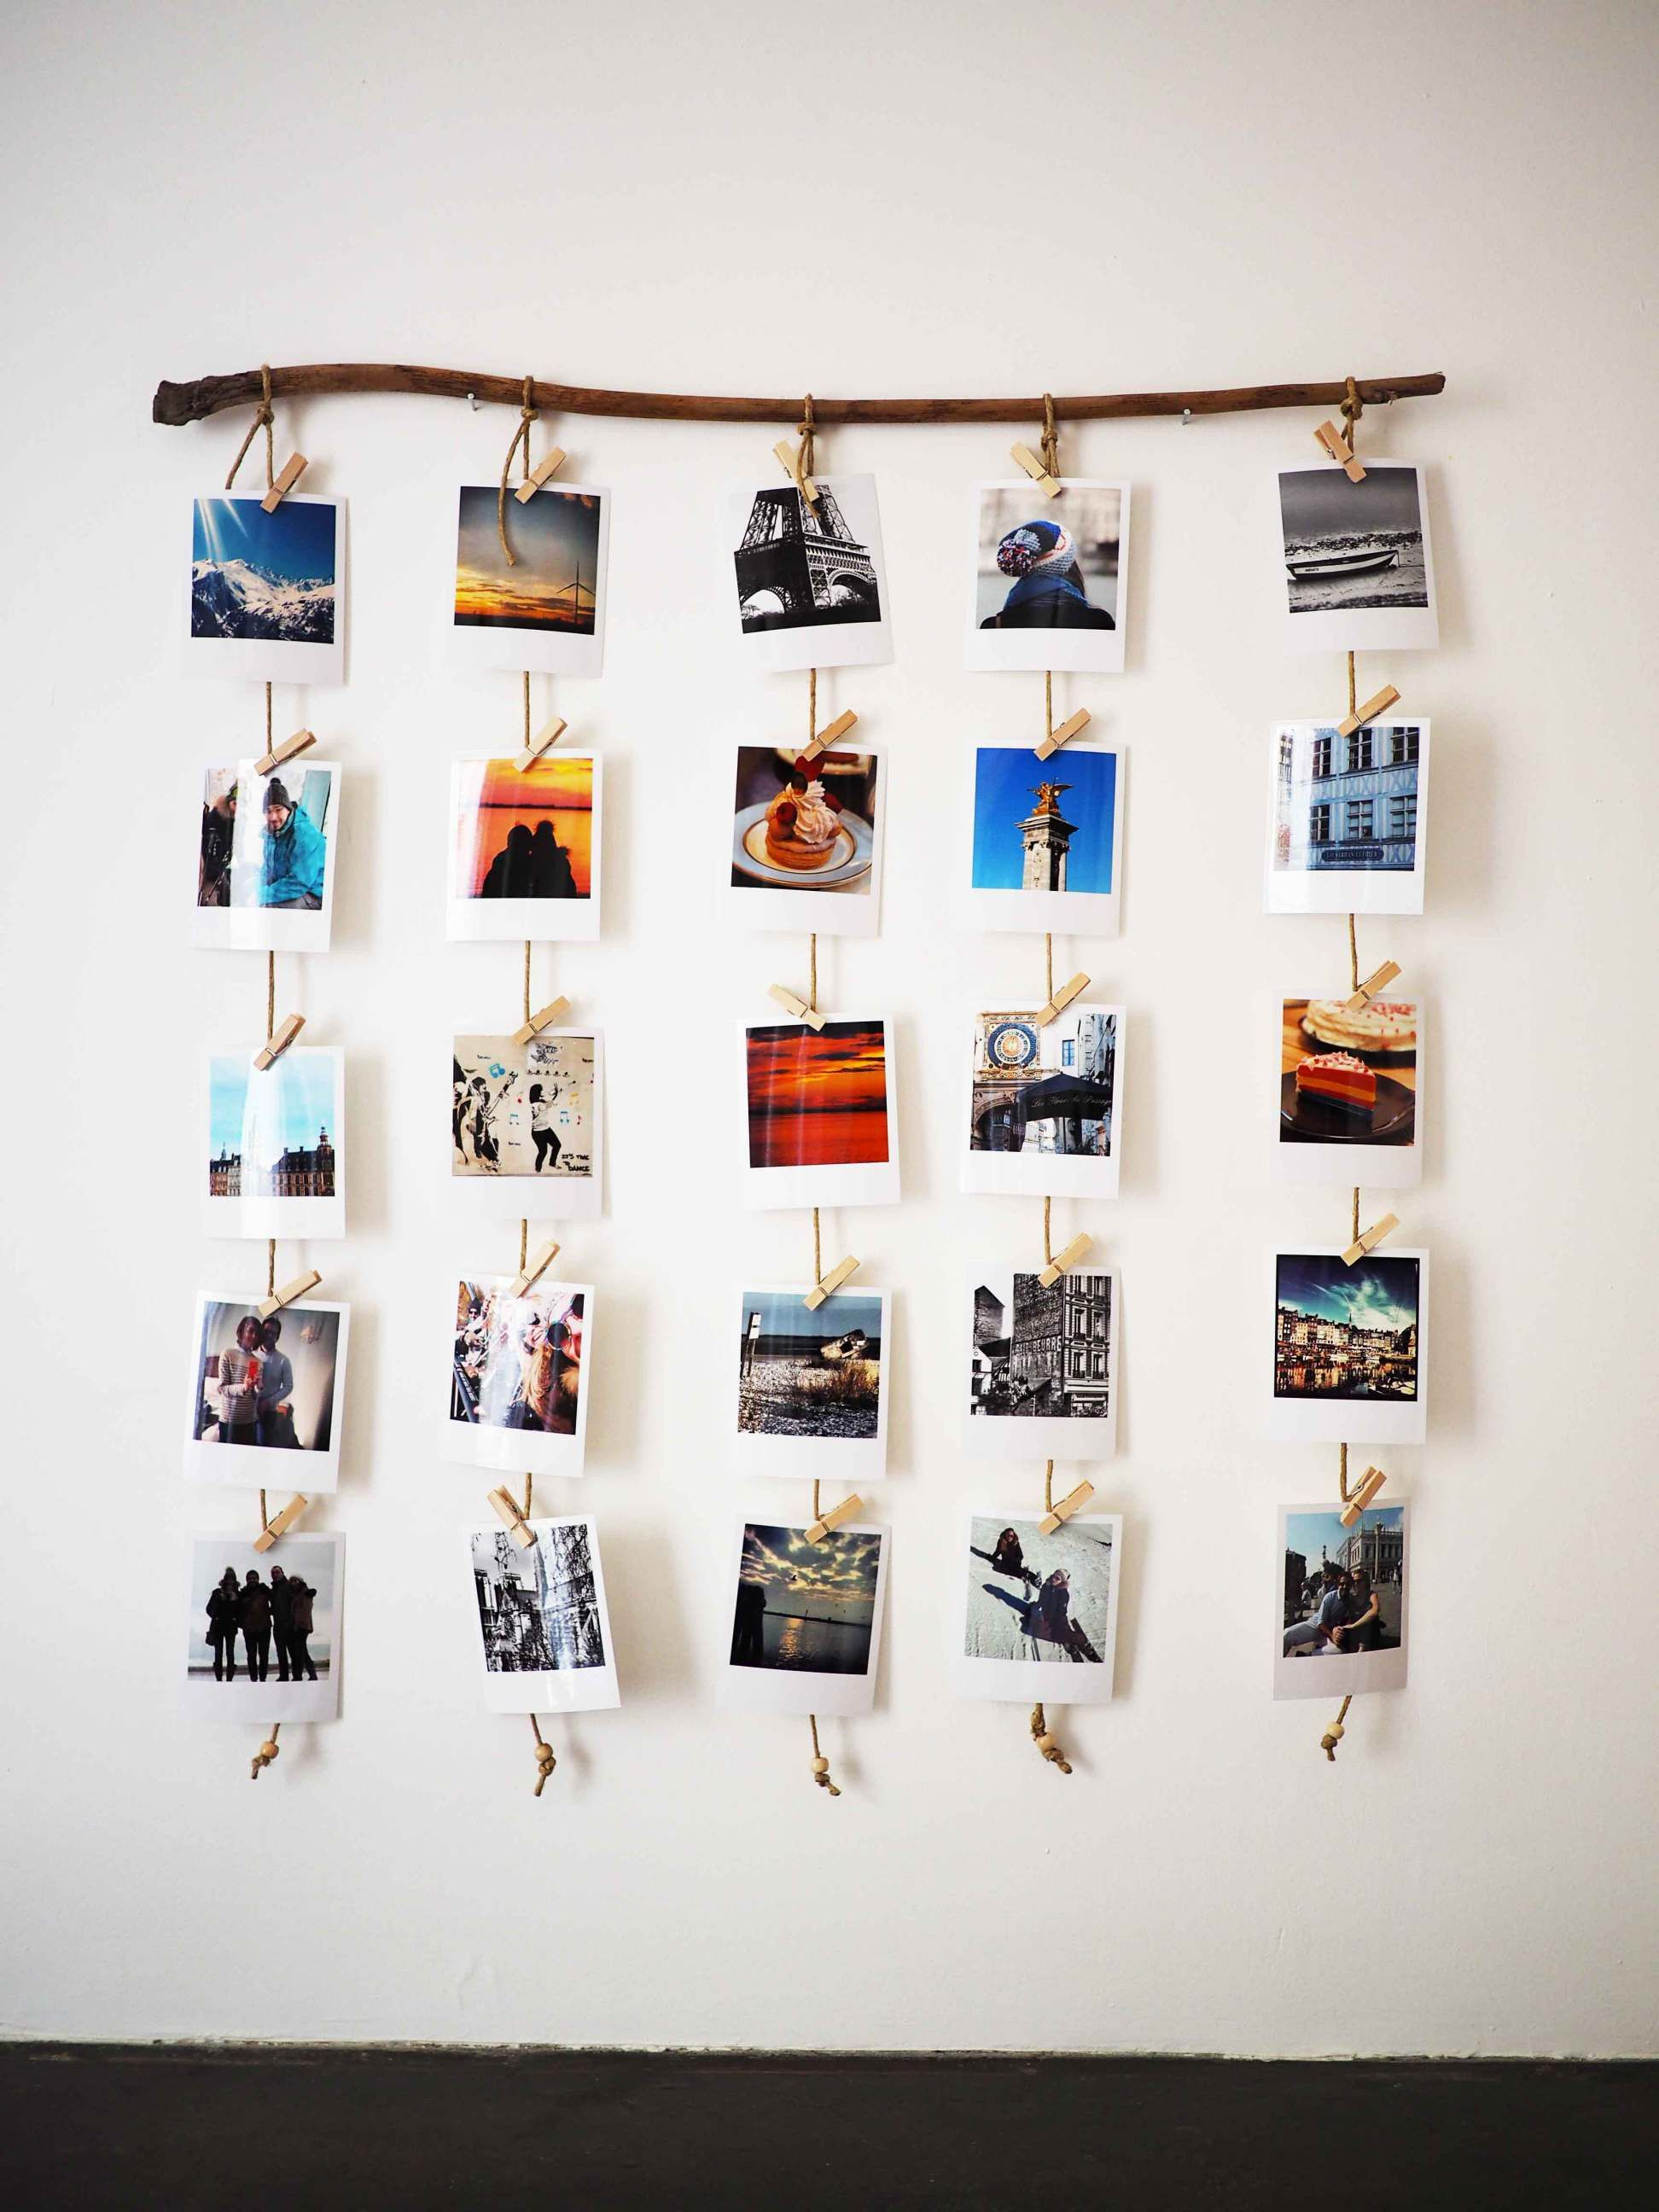 Cadre Photo Pour Polaroid Idees Accrocher Photos Polaroid Room Diy Room Decor